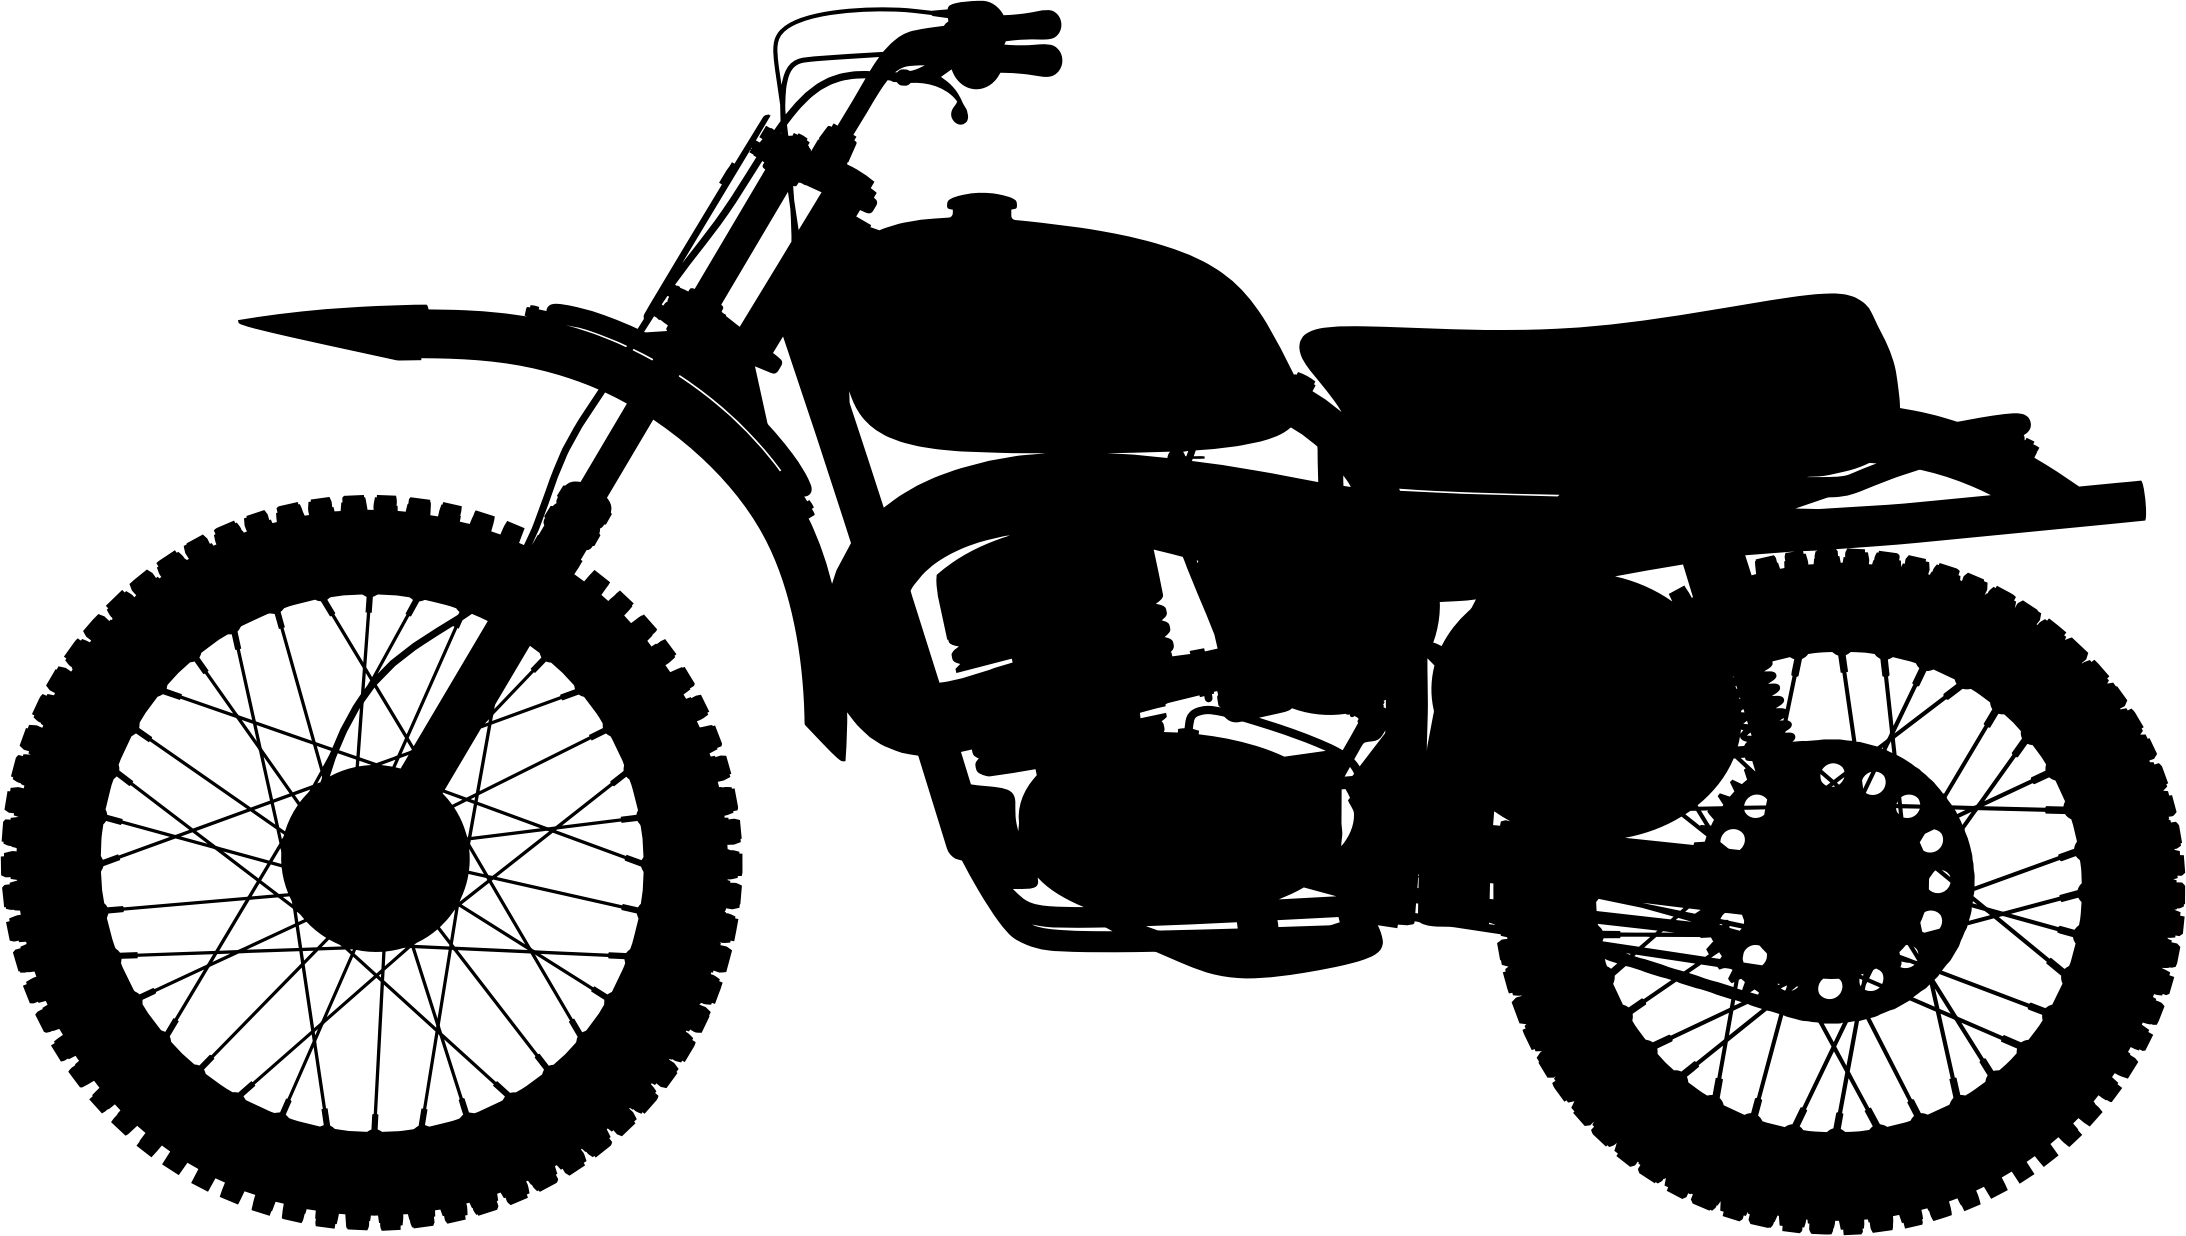 Motorcycle Clipart Png Clipart High Detail Motorcycle Silhouette